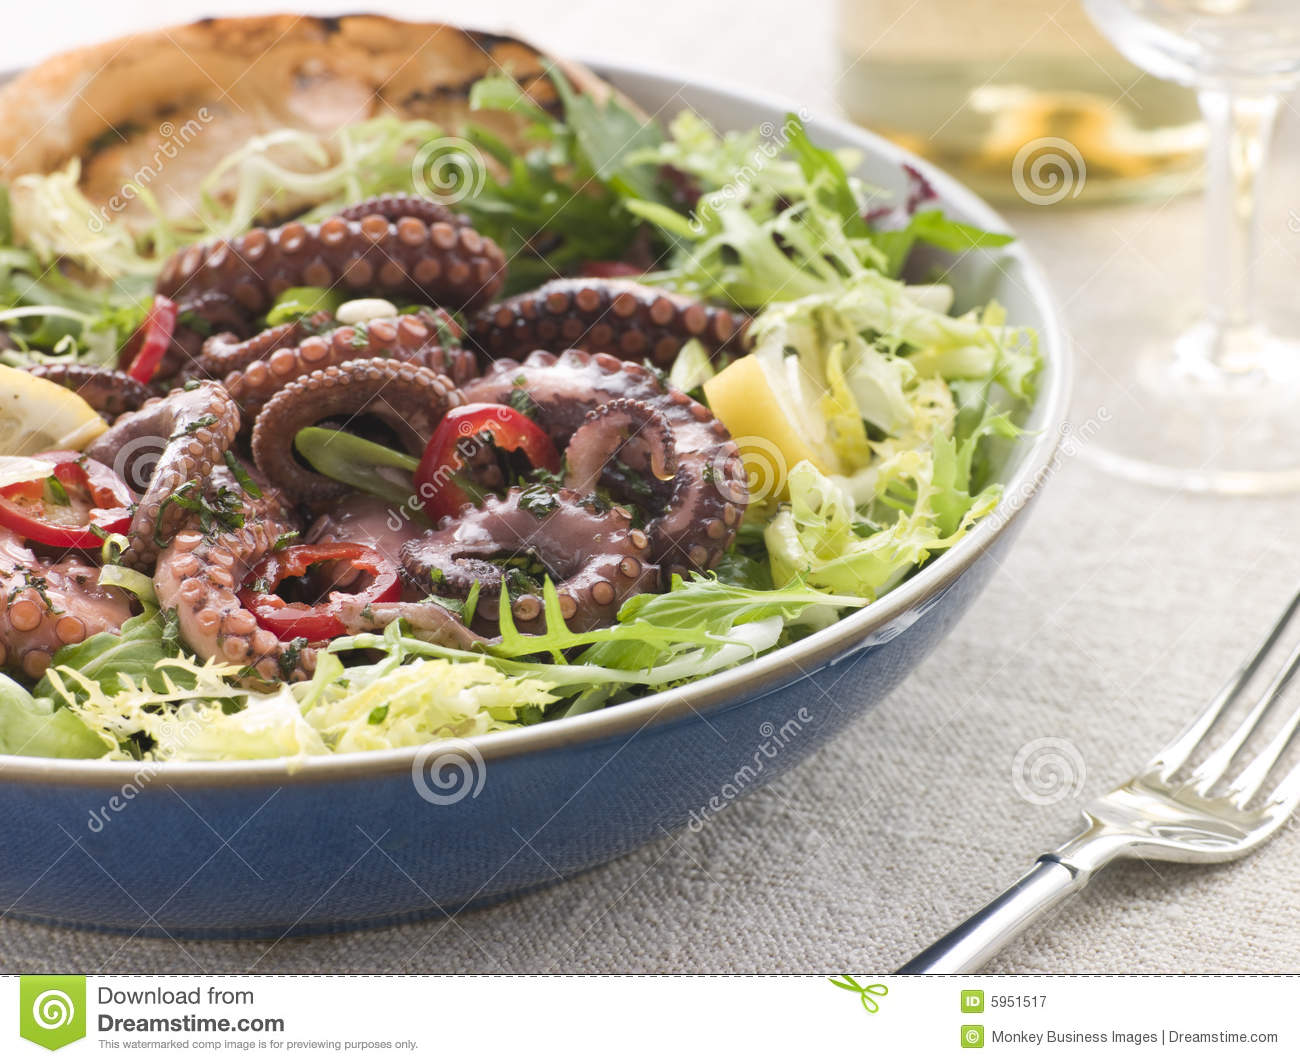 Baby Octopus Salad with Frisse Roquette